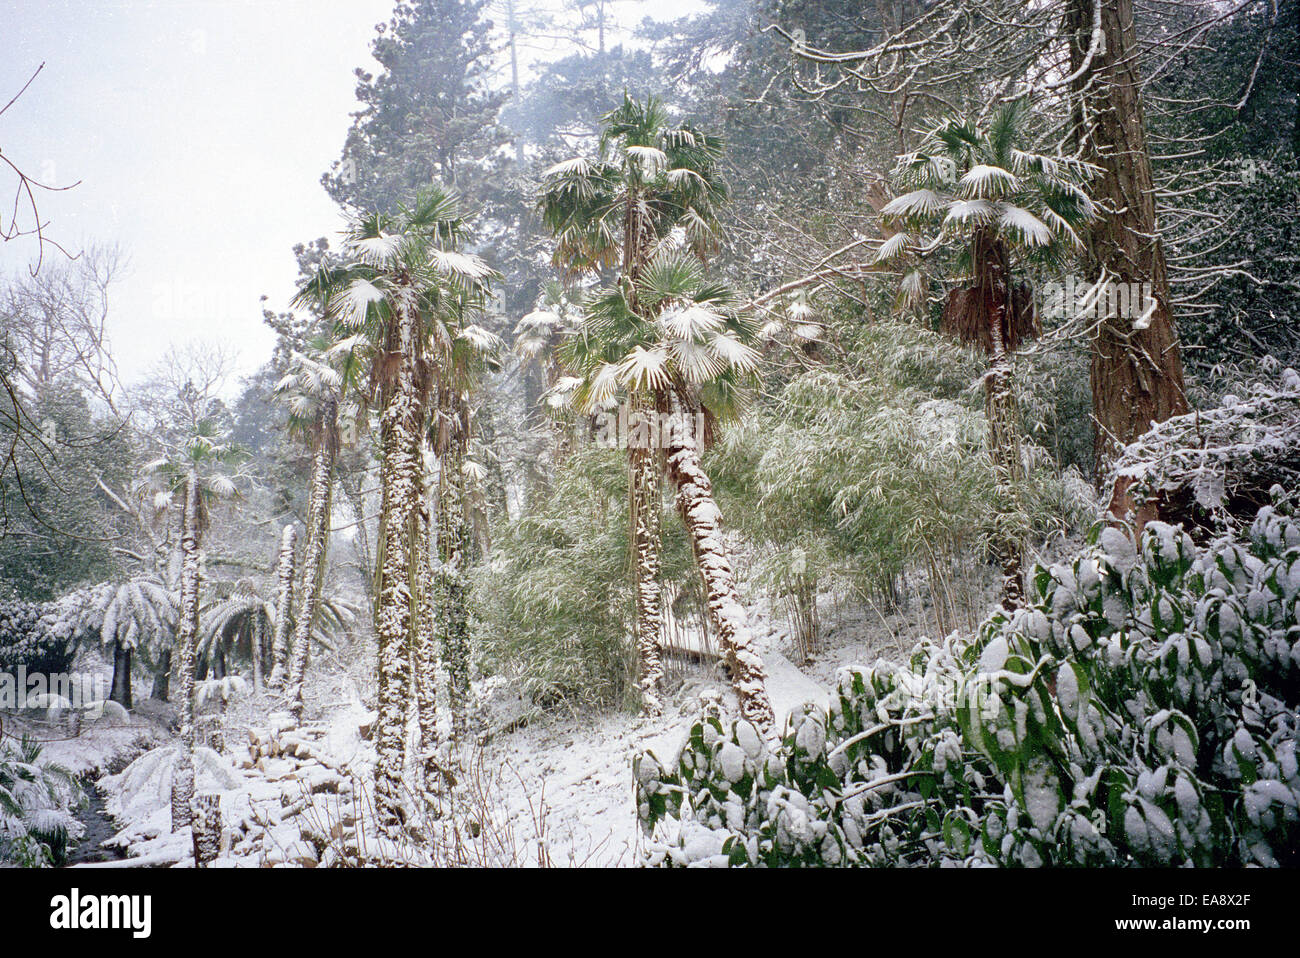 Snow fall on palm trees and ferns in wooded valley south east Cornwall - Stock Image